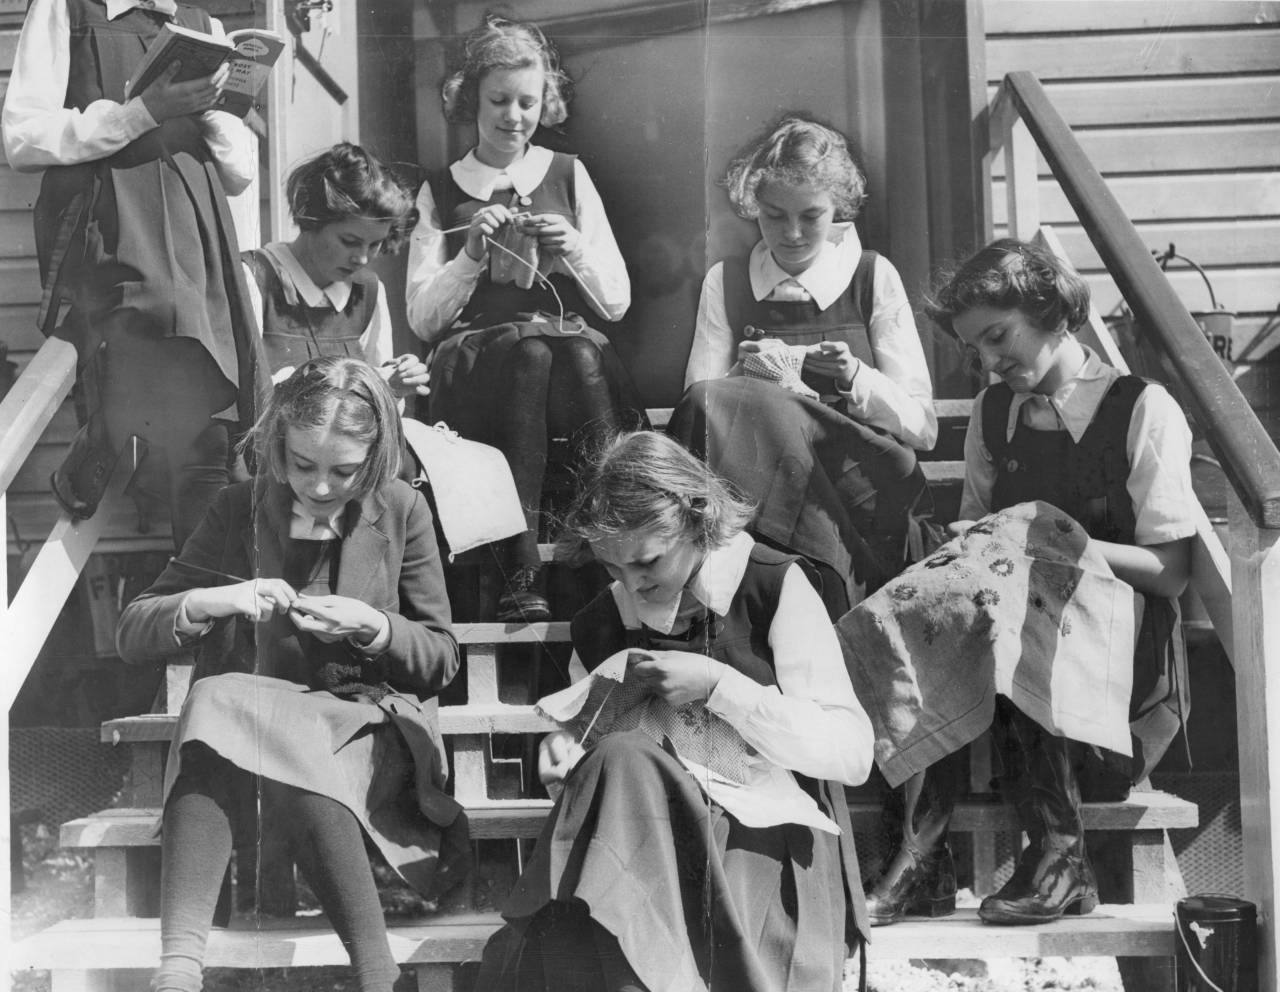 Schoolgirls Knitting On The School Steps At The First Of The Government's Elementary Camp Schools Built In Finnamore Wood Near Marlow Buckinghamshire. The Girls Are Some Of The 175 Evacuated From The Beal Modern School Ilford. Now They Live In The Self-contained Village Of Cedar Huts.